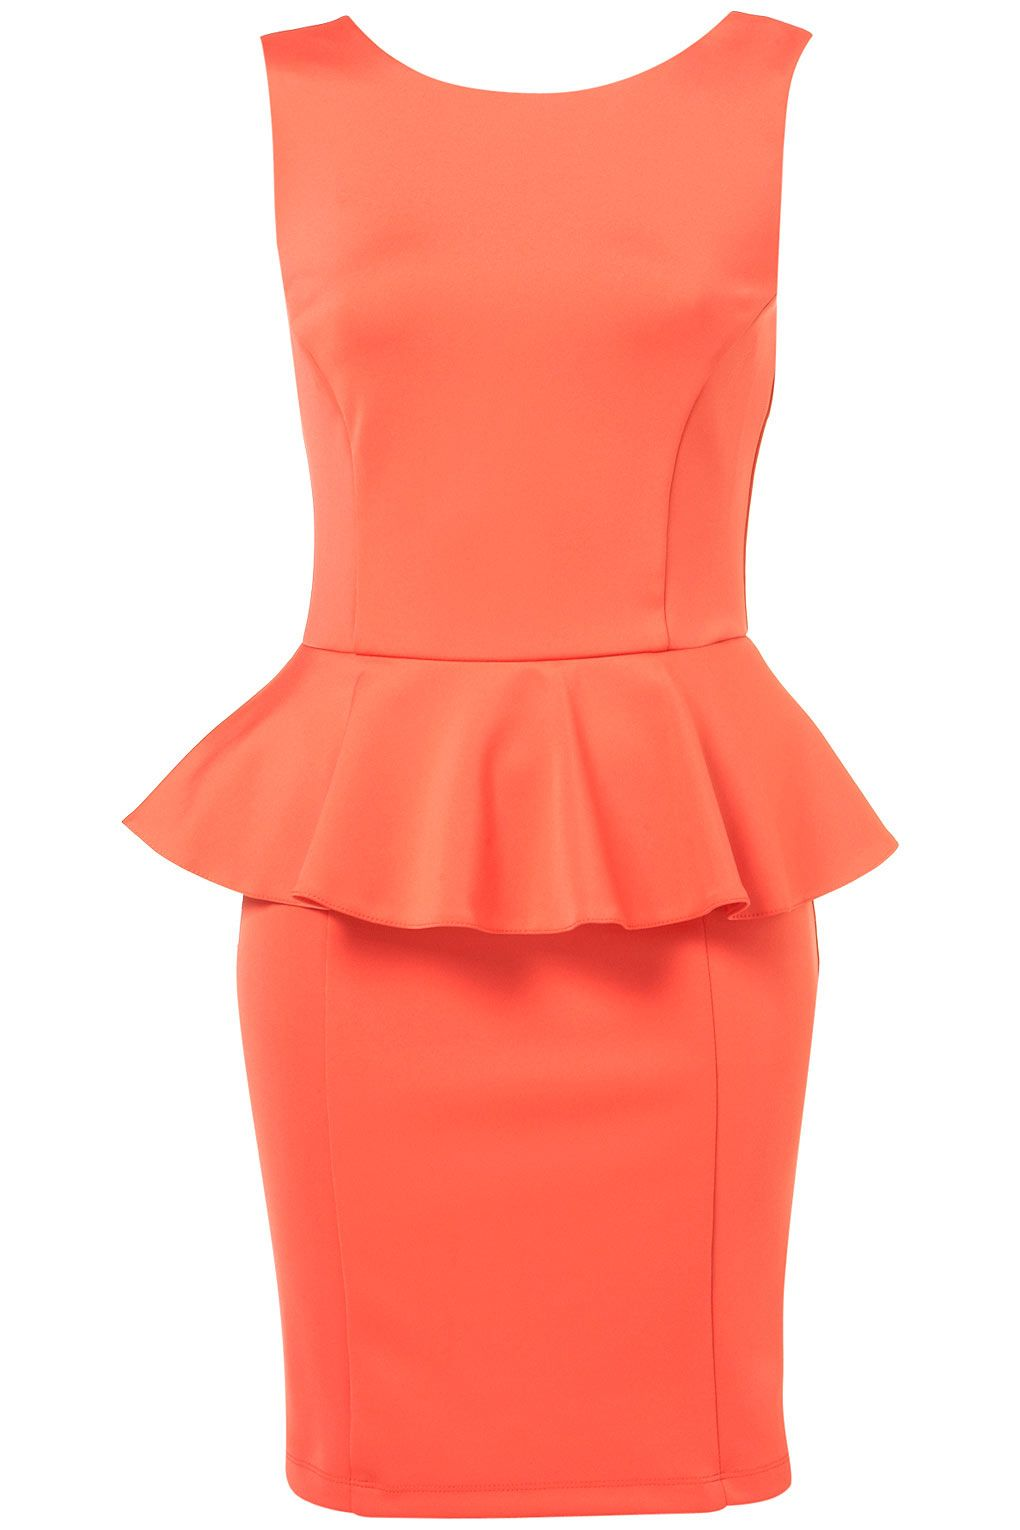 I think the peplum waist would be flattering on a body shape that